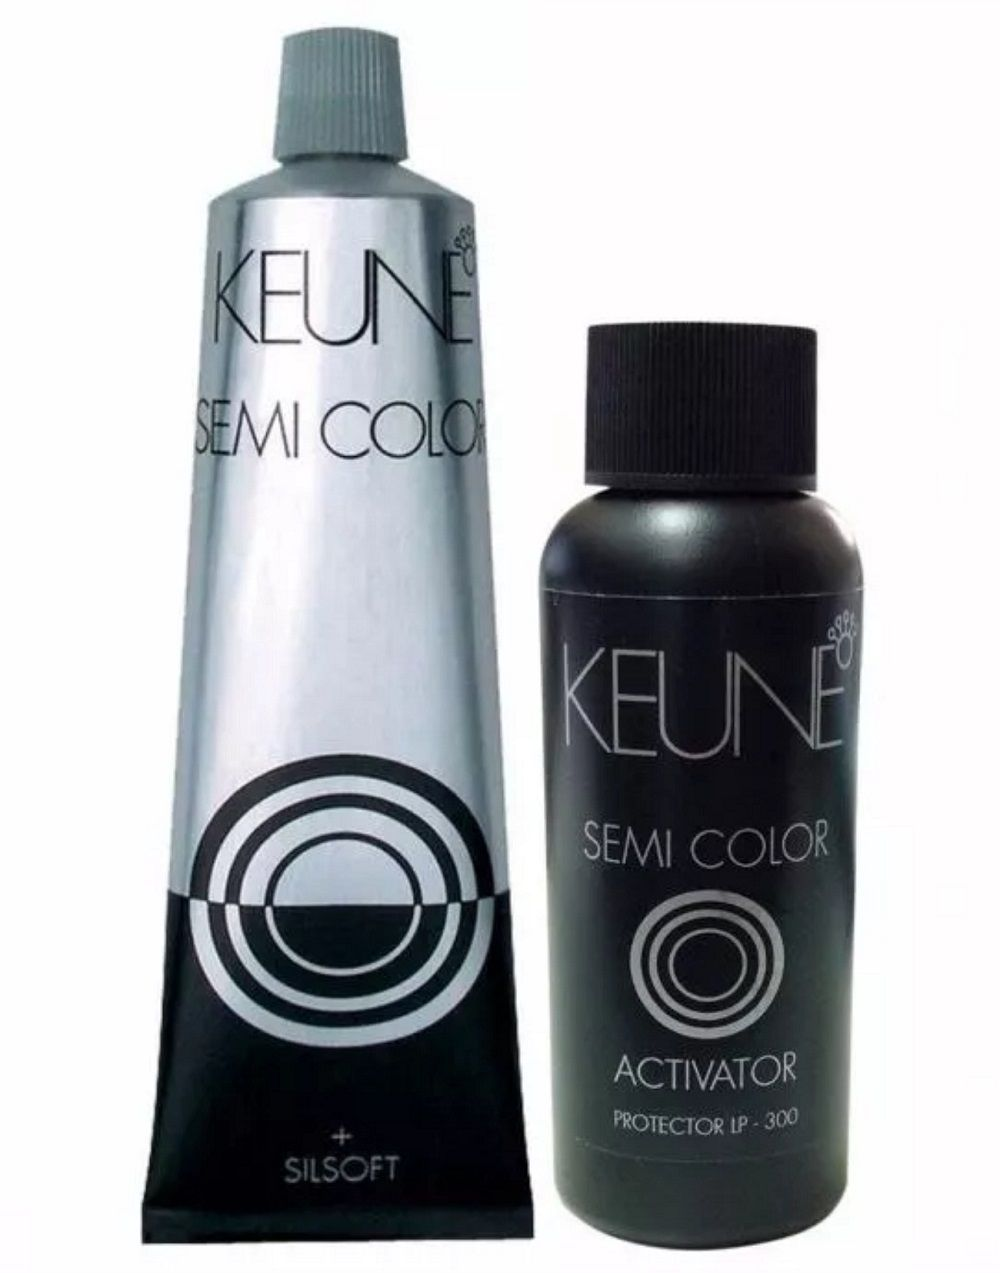 Kit Keune Tonalizante 60ml - Mix 0/33 - Dourado + Ativador 60ml